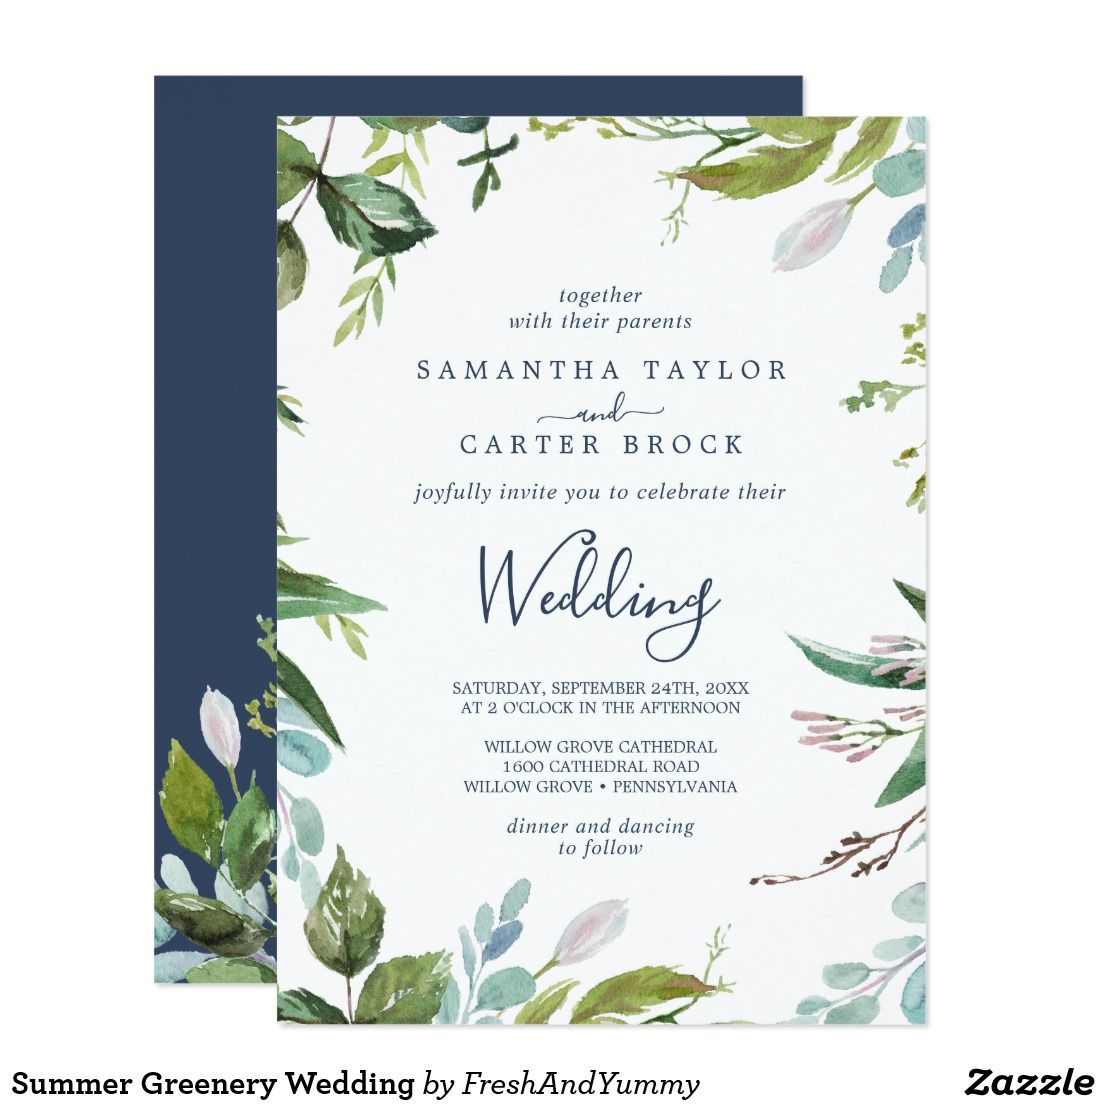 Summer Greenery Wedding Invitation Zazzle Com Beach Wedding